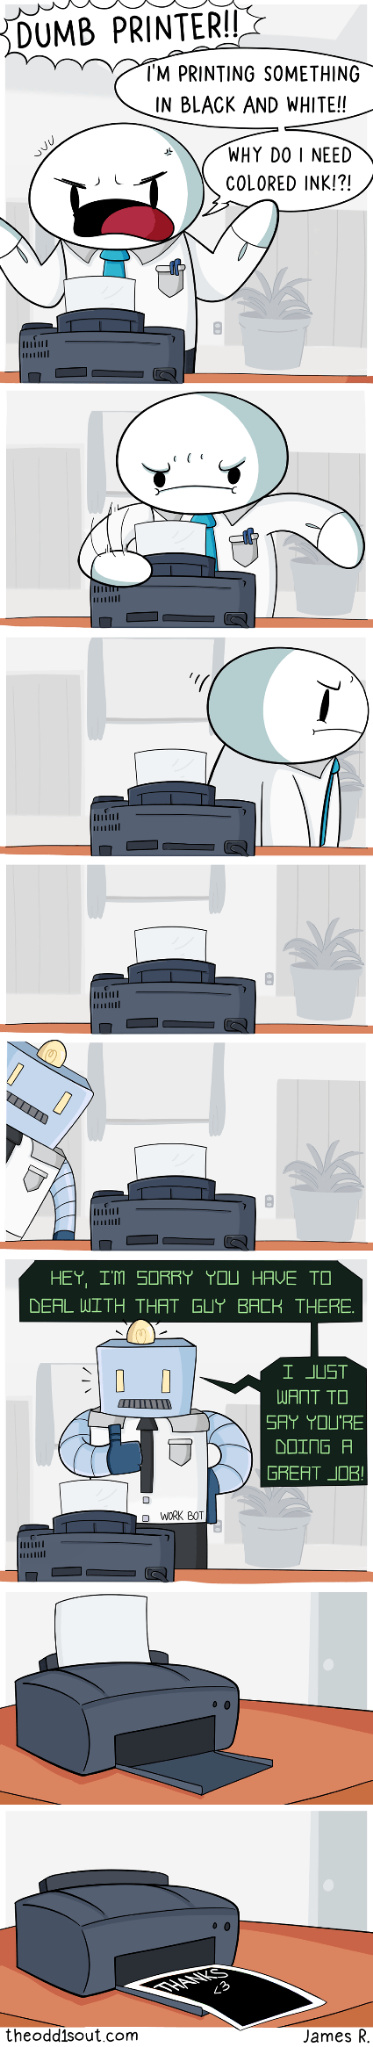 What printer has given you the most grief? - meme